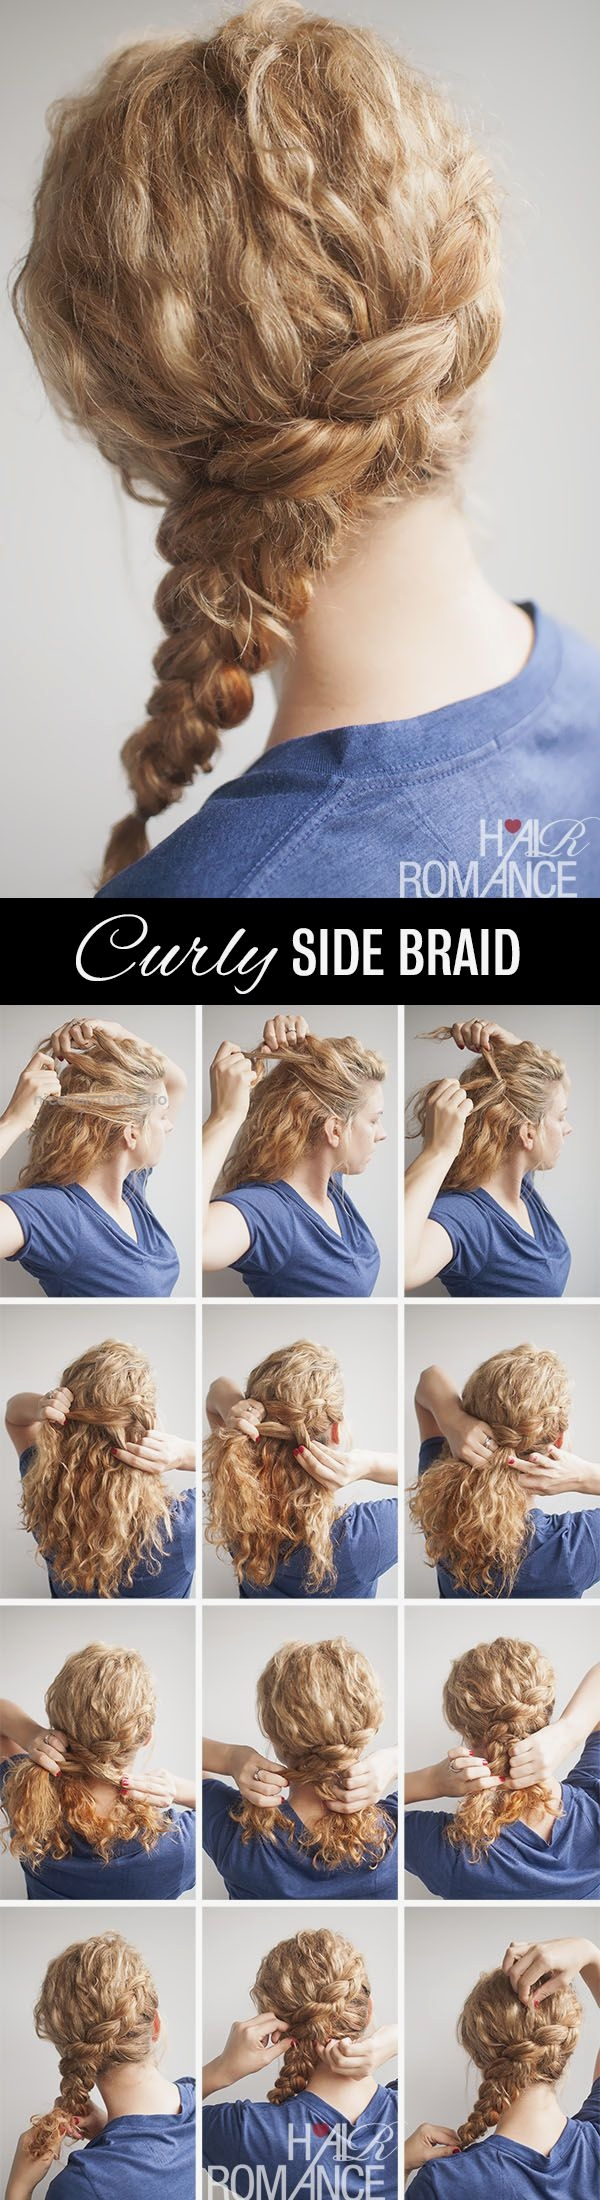 2017 05 side curls hairstyles - Curly Side Braid Hairstyle Tutorial Hair Romance Hair Romance Curly Side Braid Hairstyle Tutorial